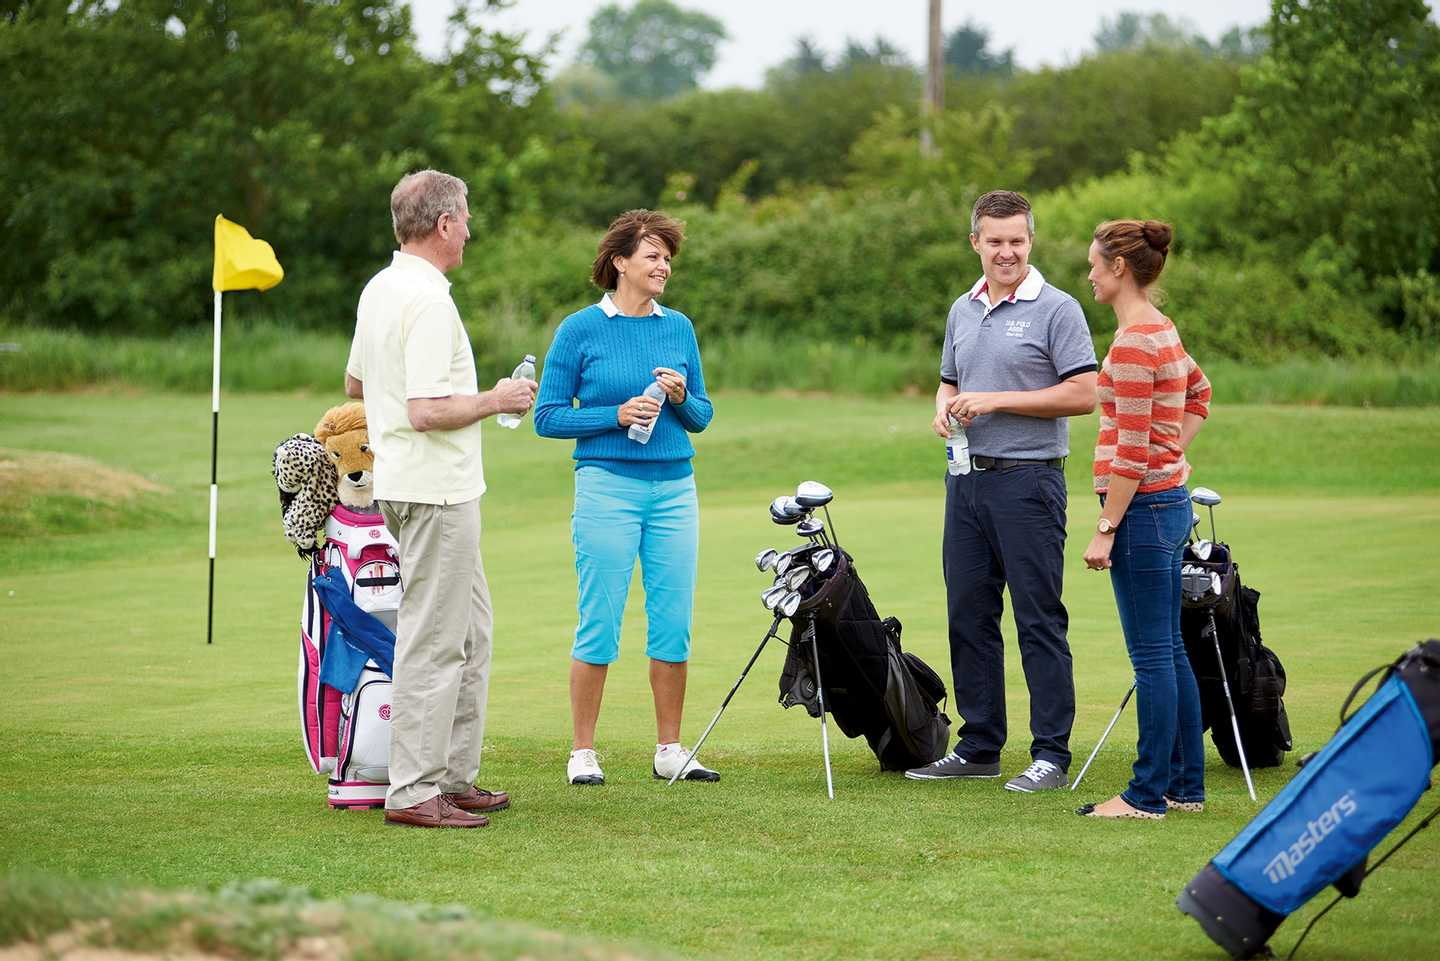 Guests playing a round of golf